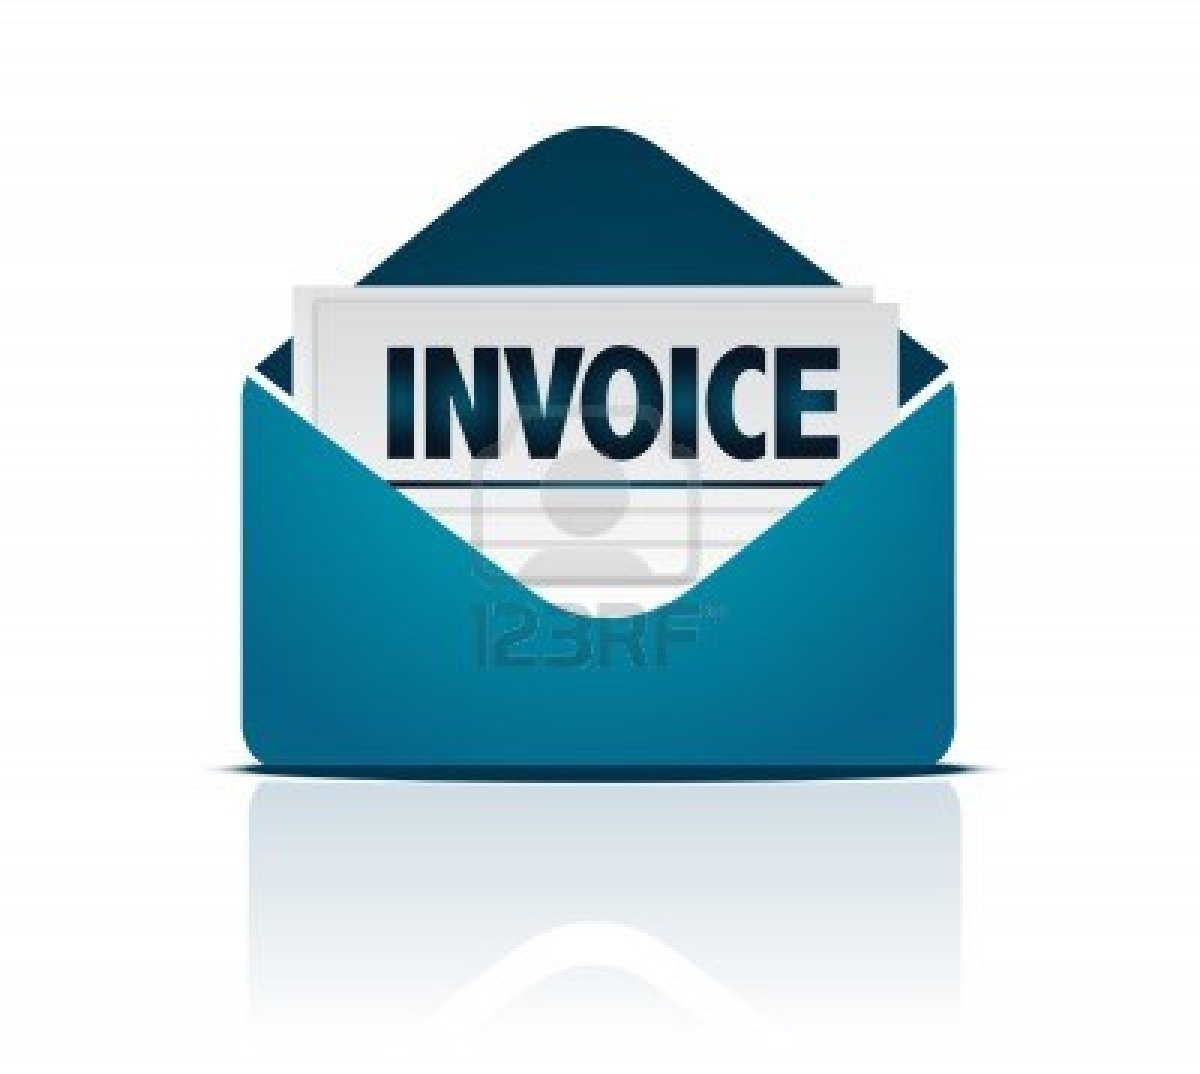 Clip Art of Invoices